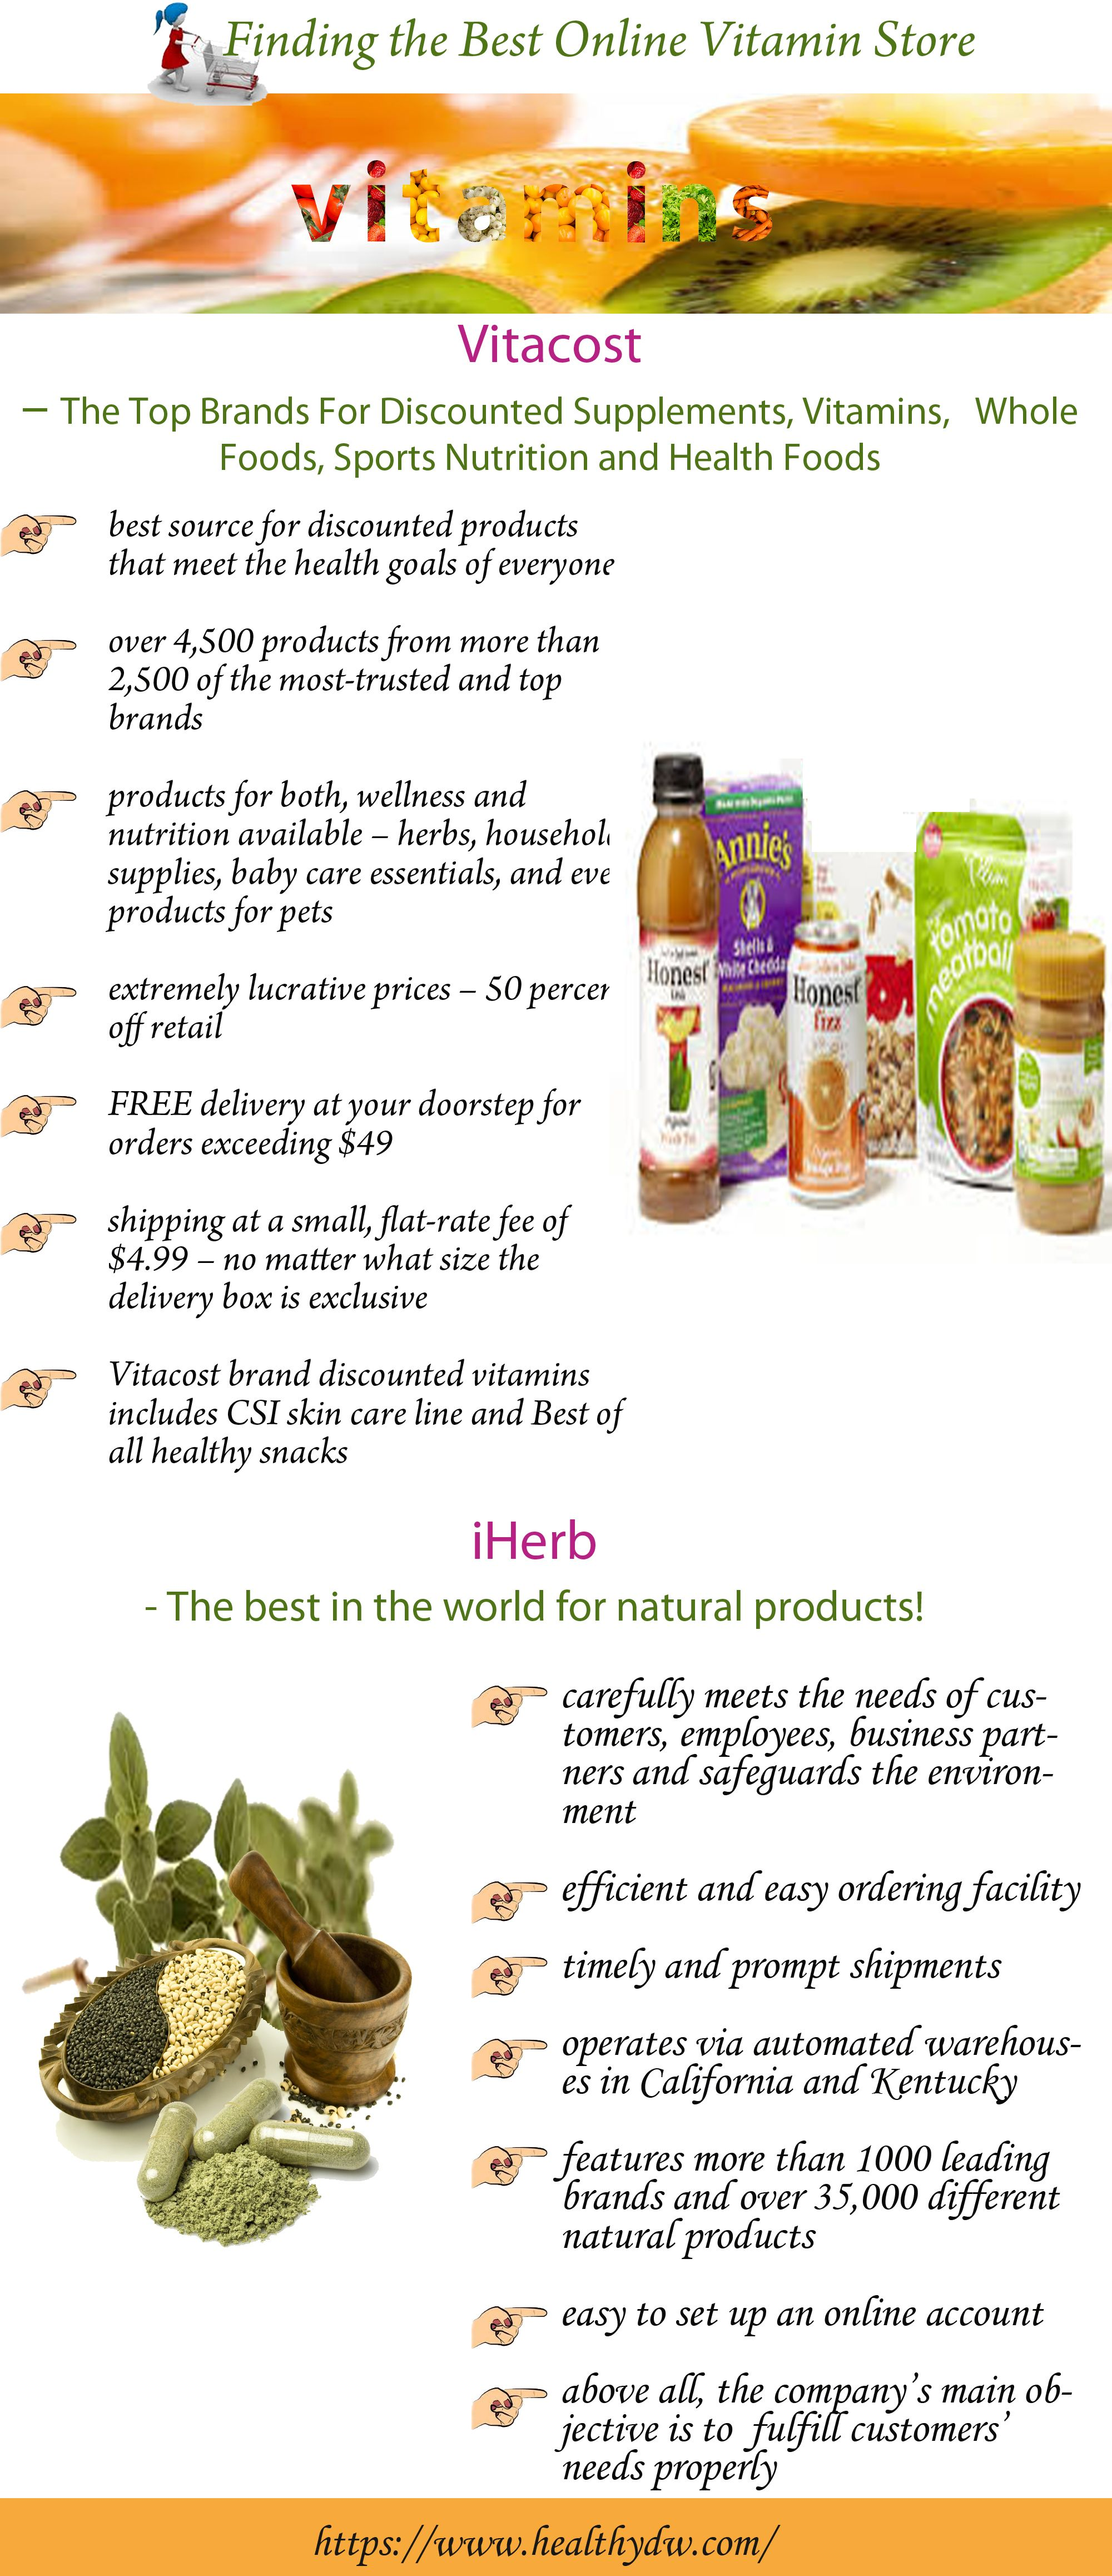 Pin by Anthonymary on Finding the Best Online Vitamin Store